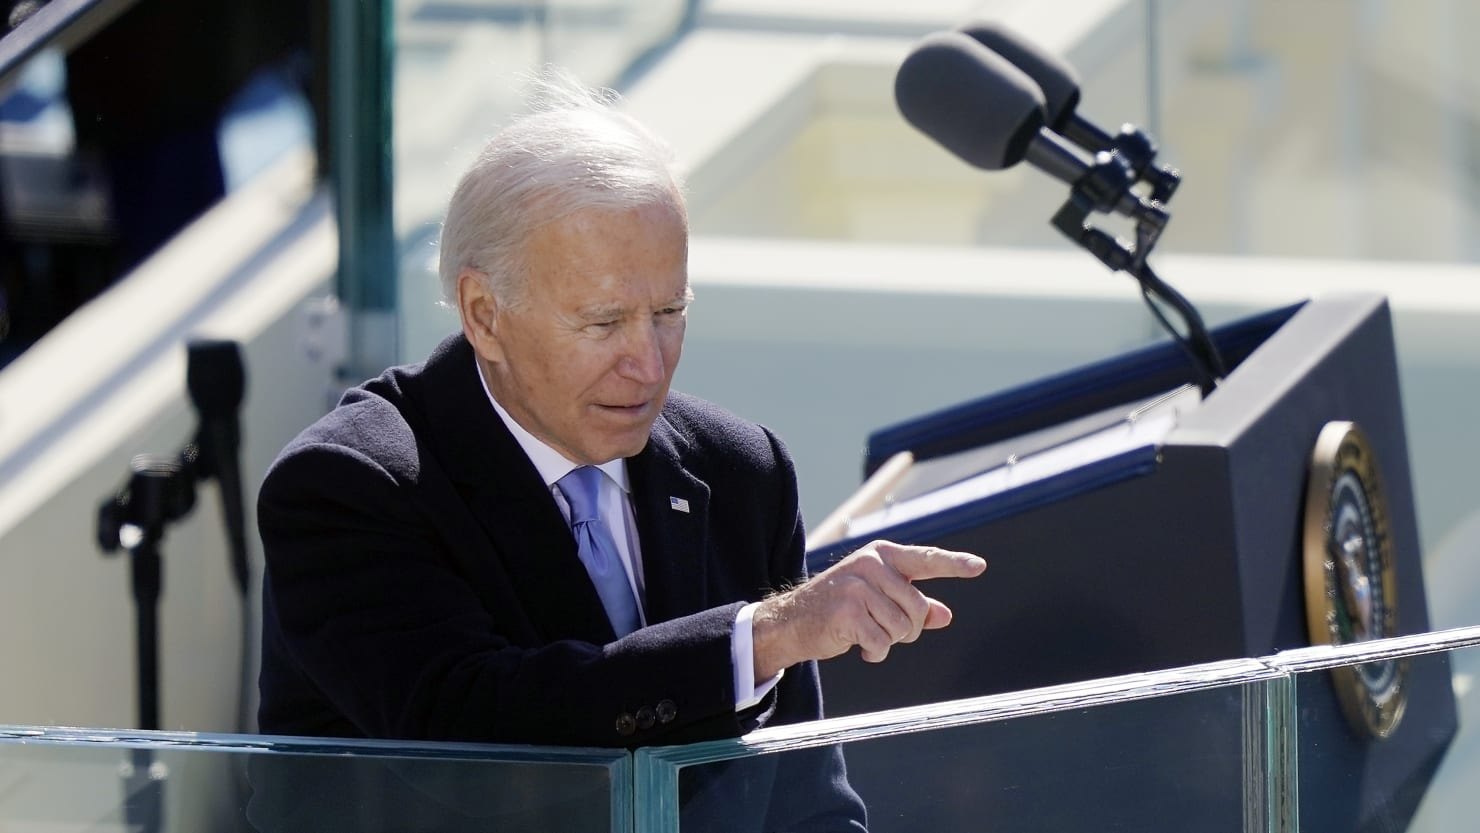 Twitter Carries Out Peaceful Transfer of Power, Gives Biden @POTUS Account